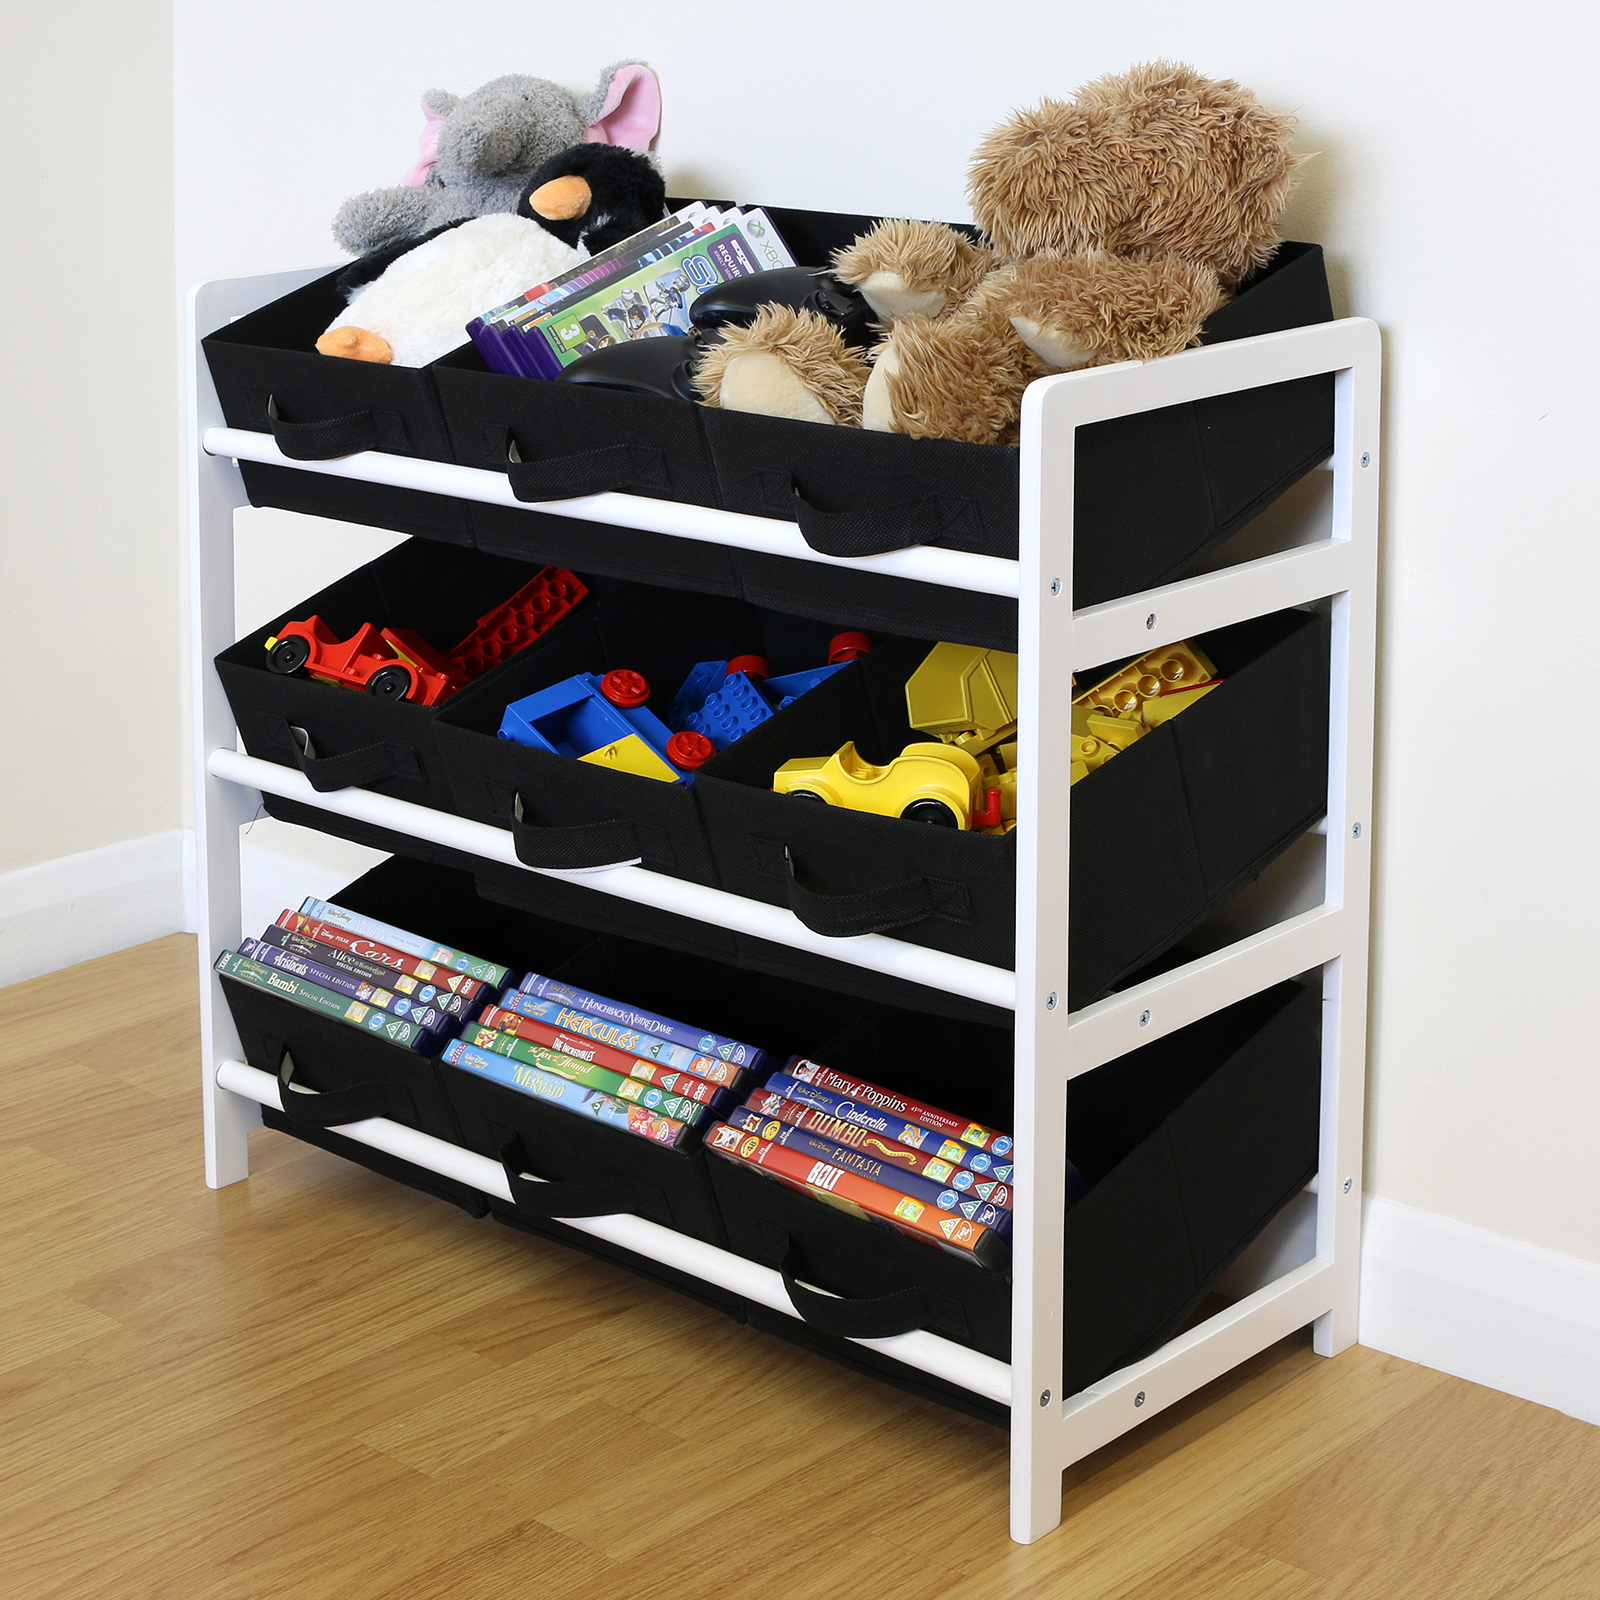 Hartleys 3 Tier Storage Shelf Unit Kids Childrens Bedroom: Black & White 3 Tier Toy Unit 9 Canvas Boxes/Drawers Kids